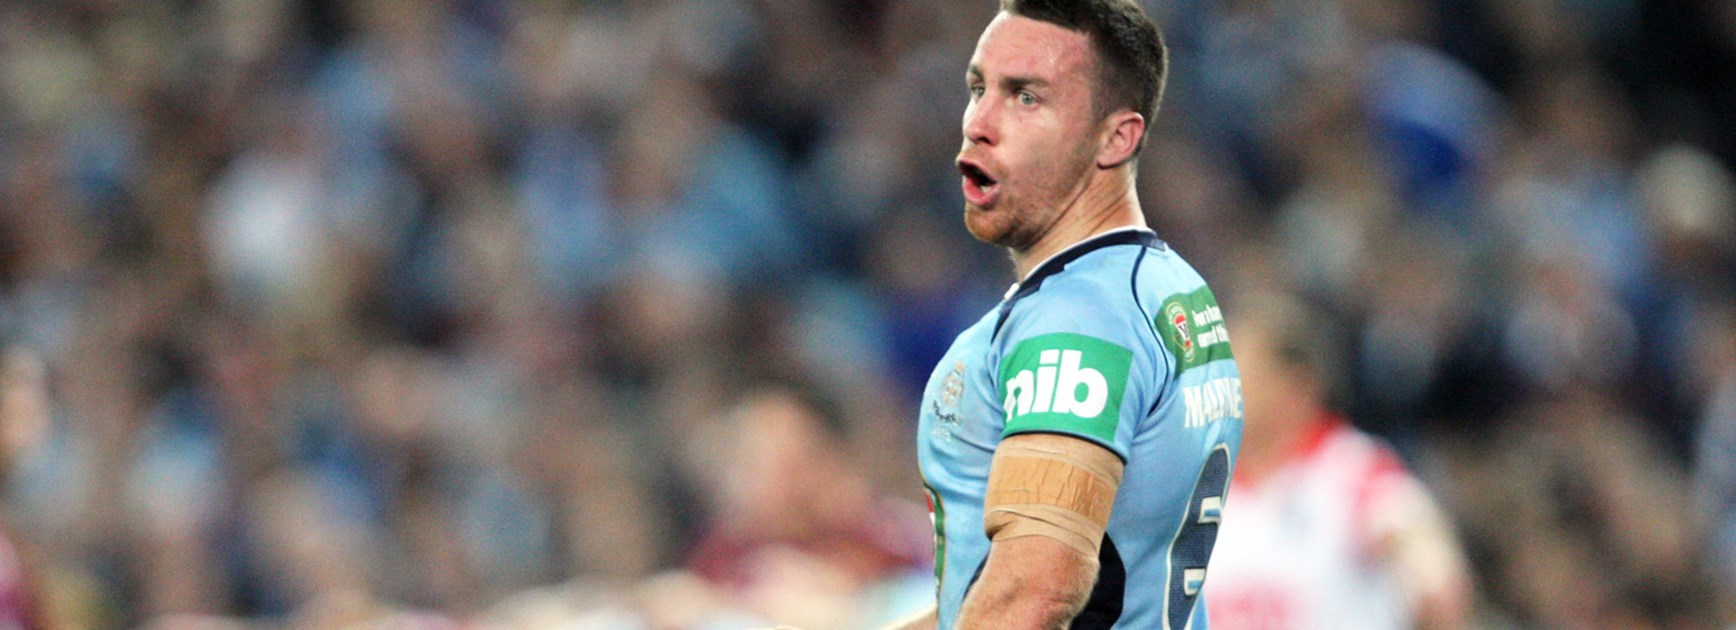 Sharks five-eighth last played for NSW in 2013.